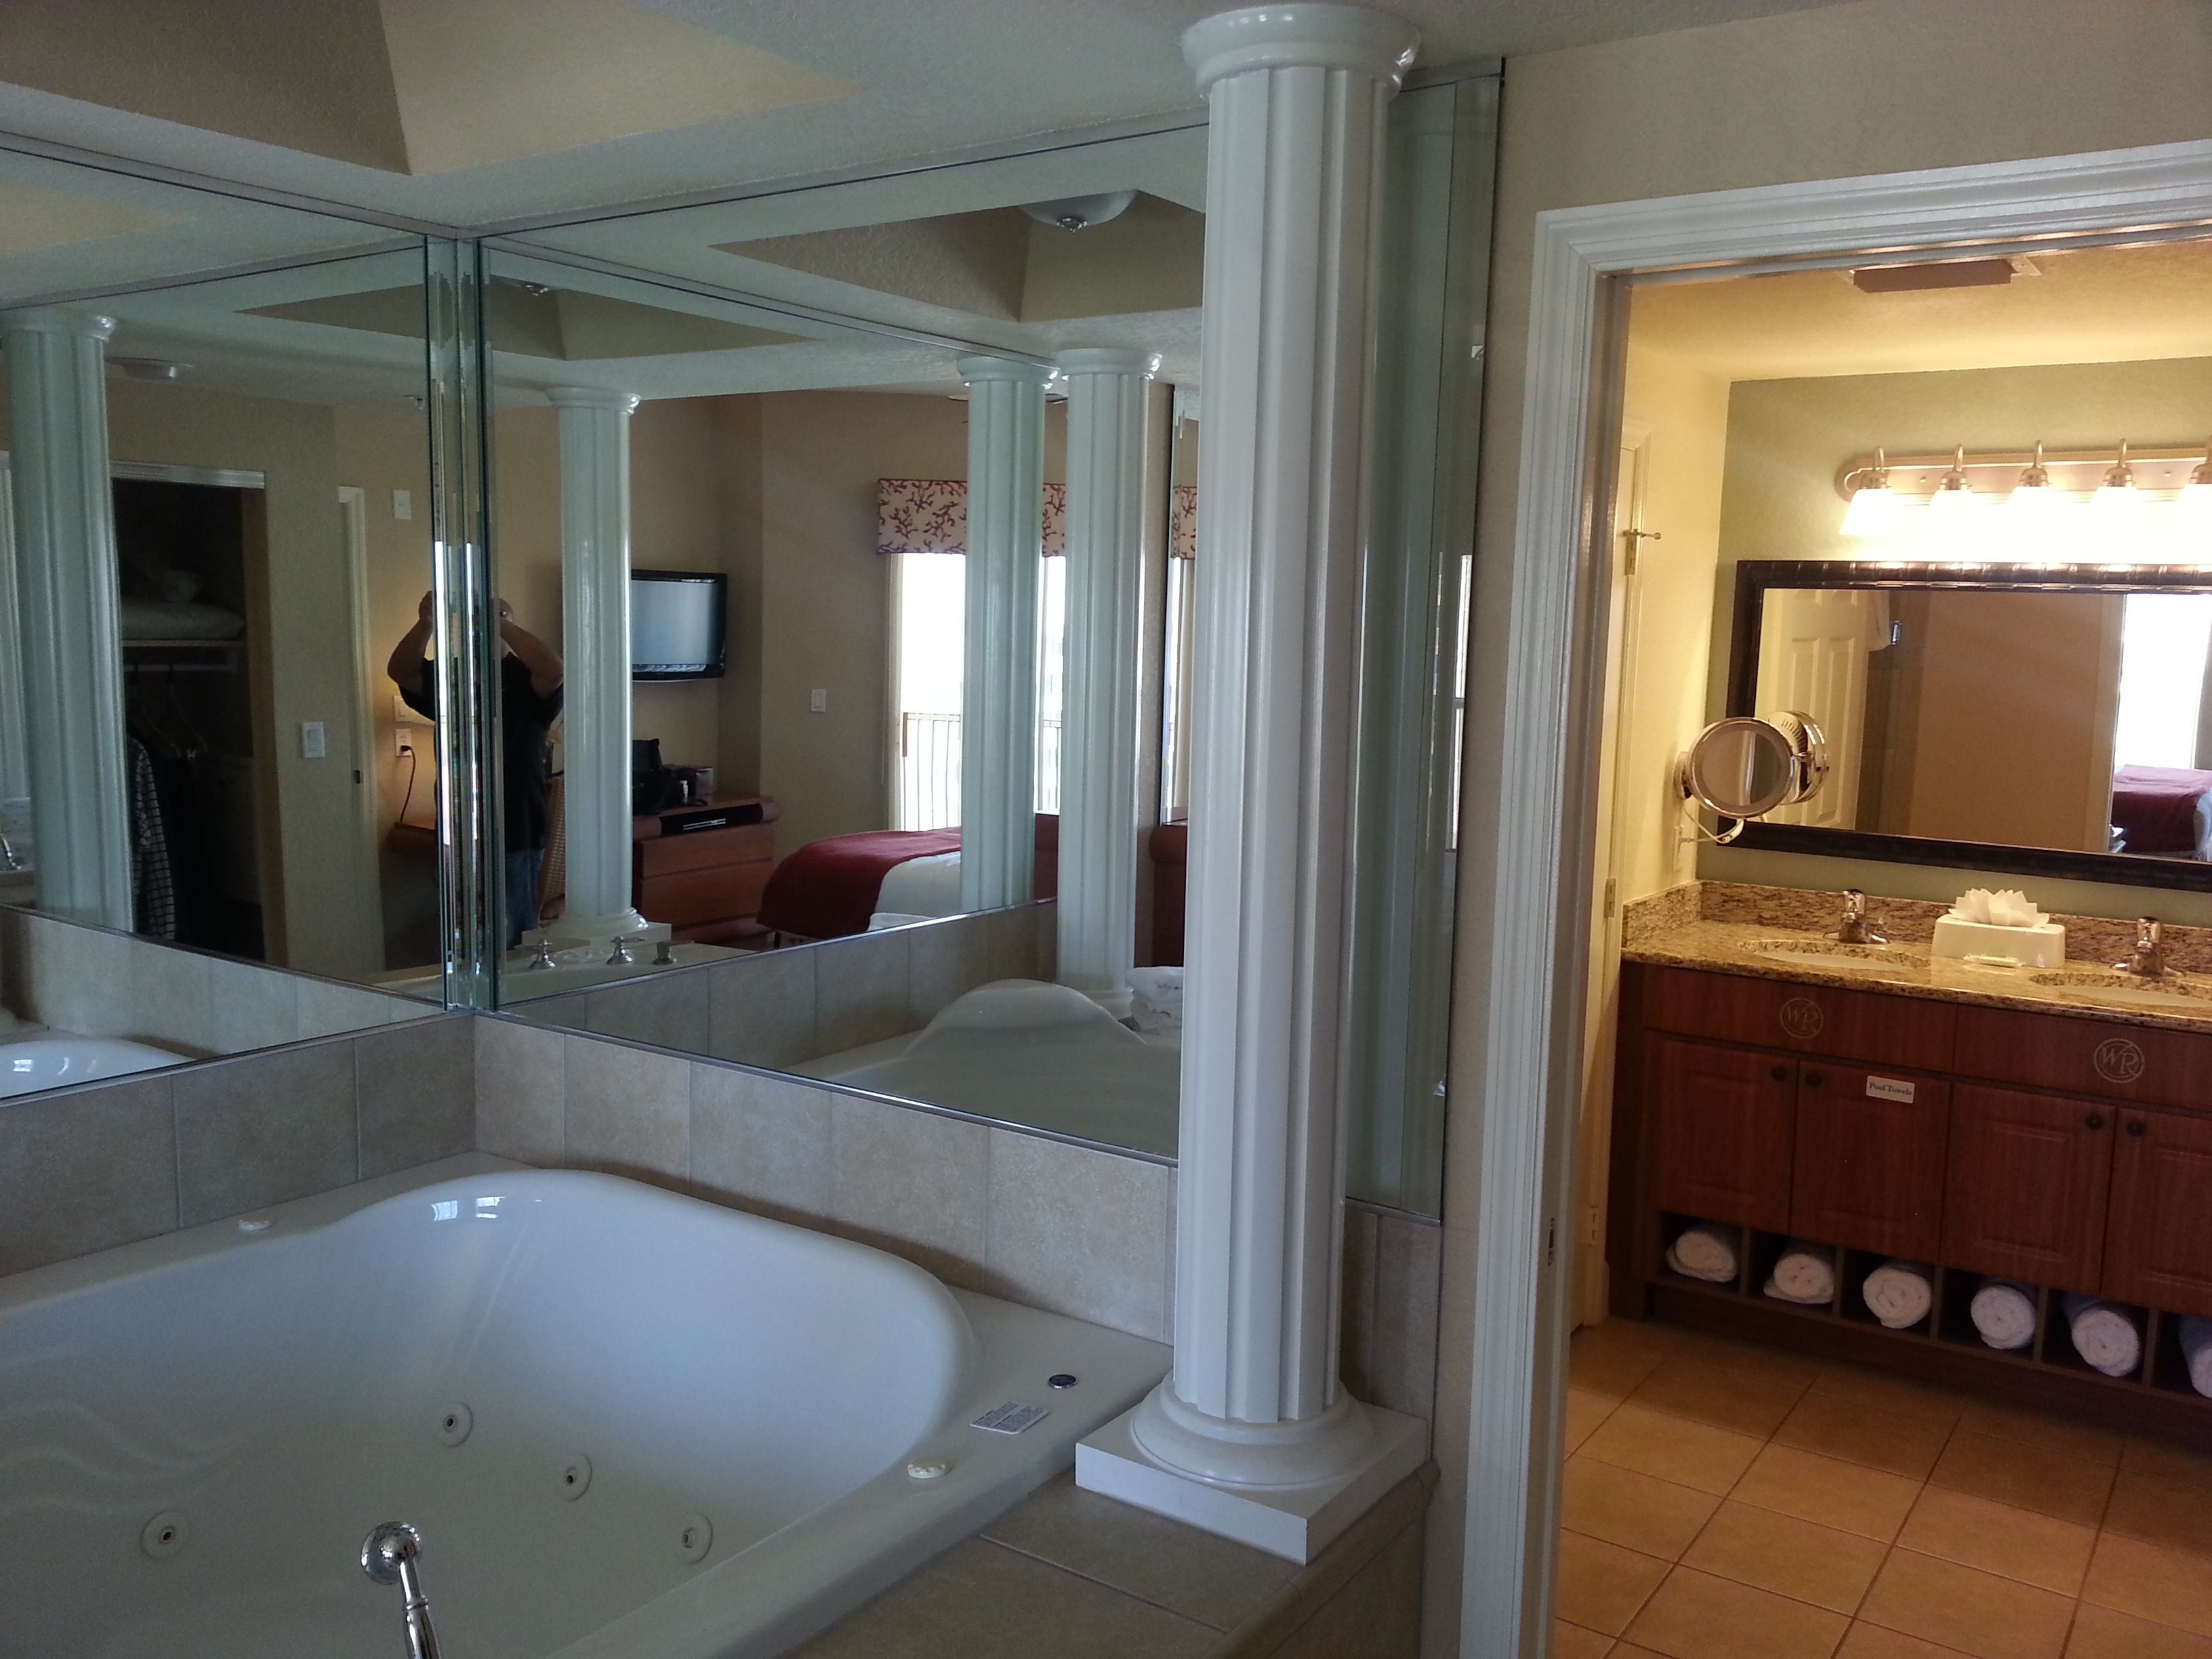 Westgate Town Center In Orlando Florida Only 2 Miles Away From Disney World I Love My Jacuzzi